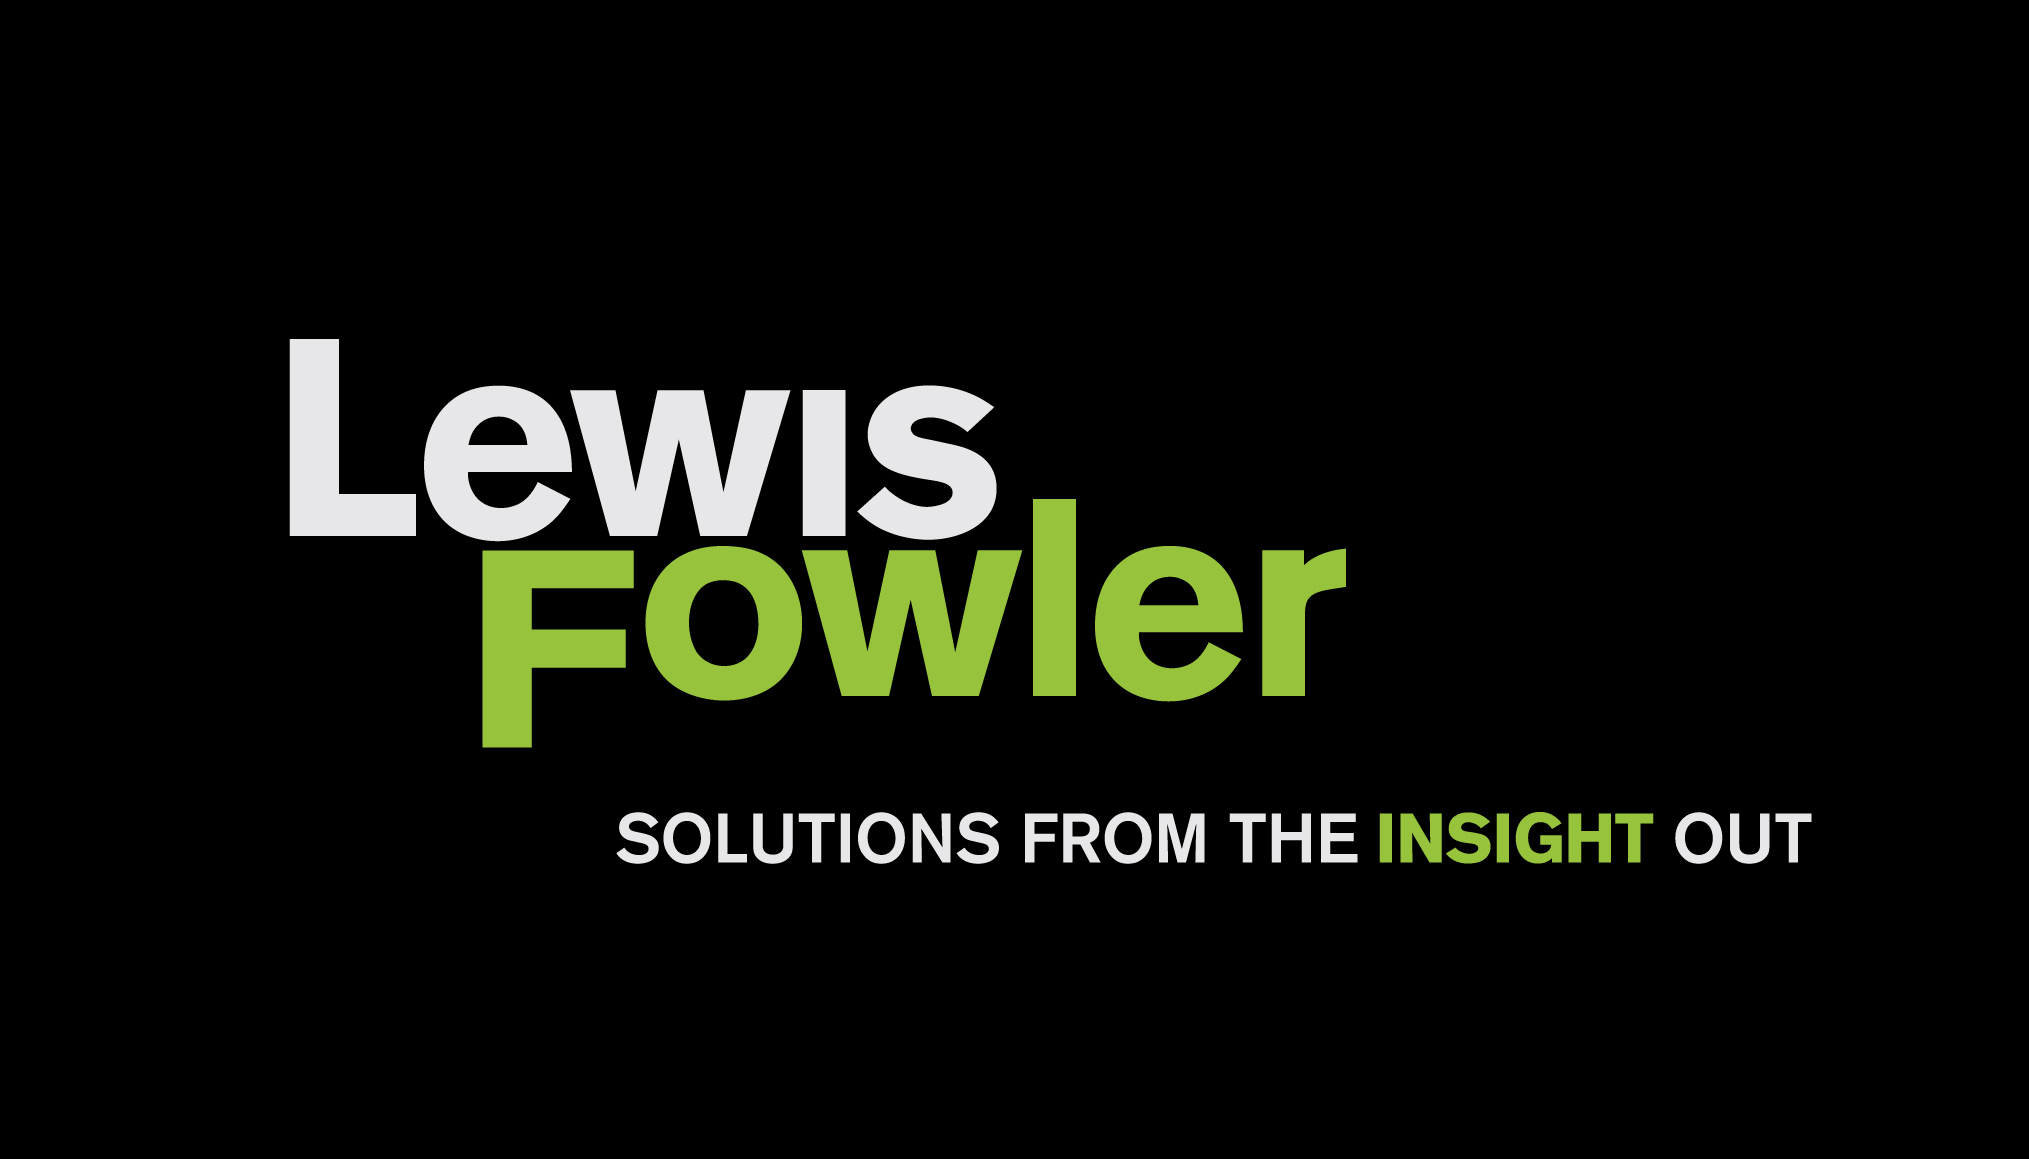 Lewis Fowler